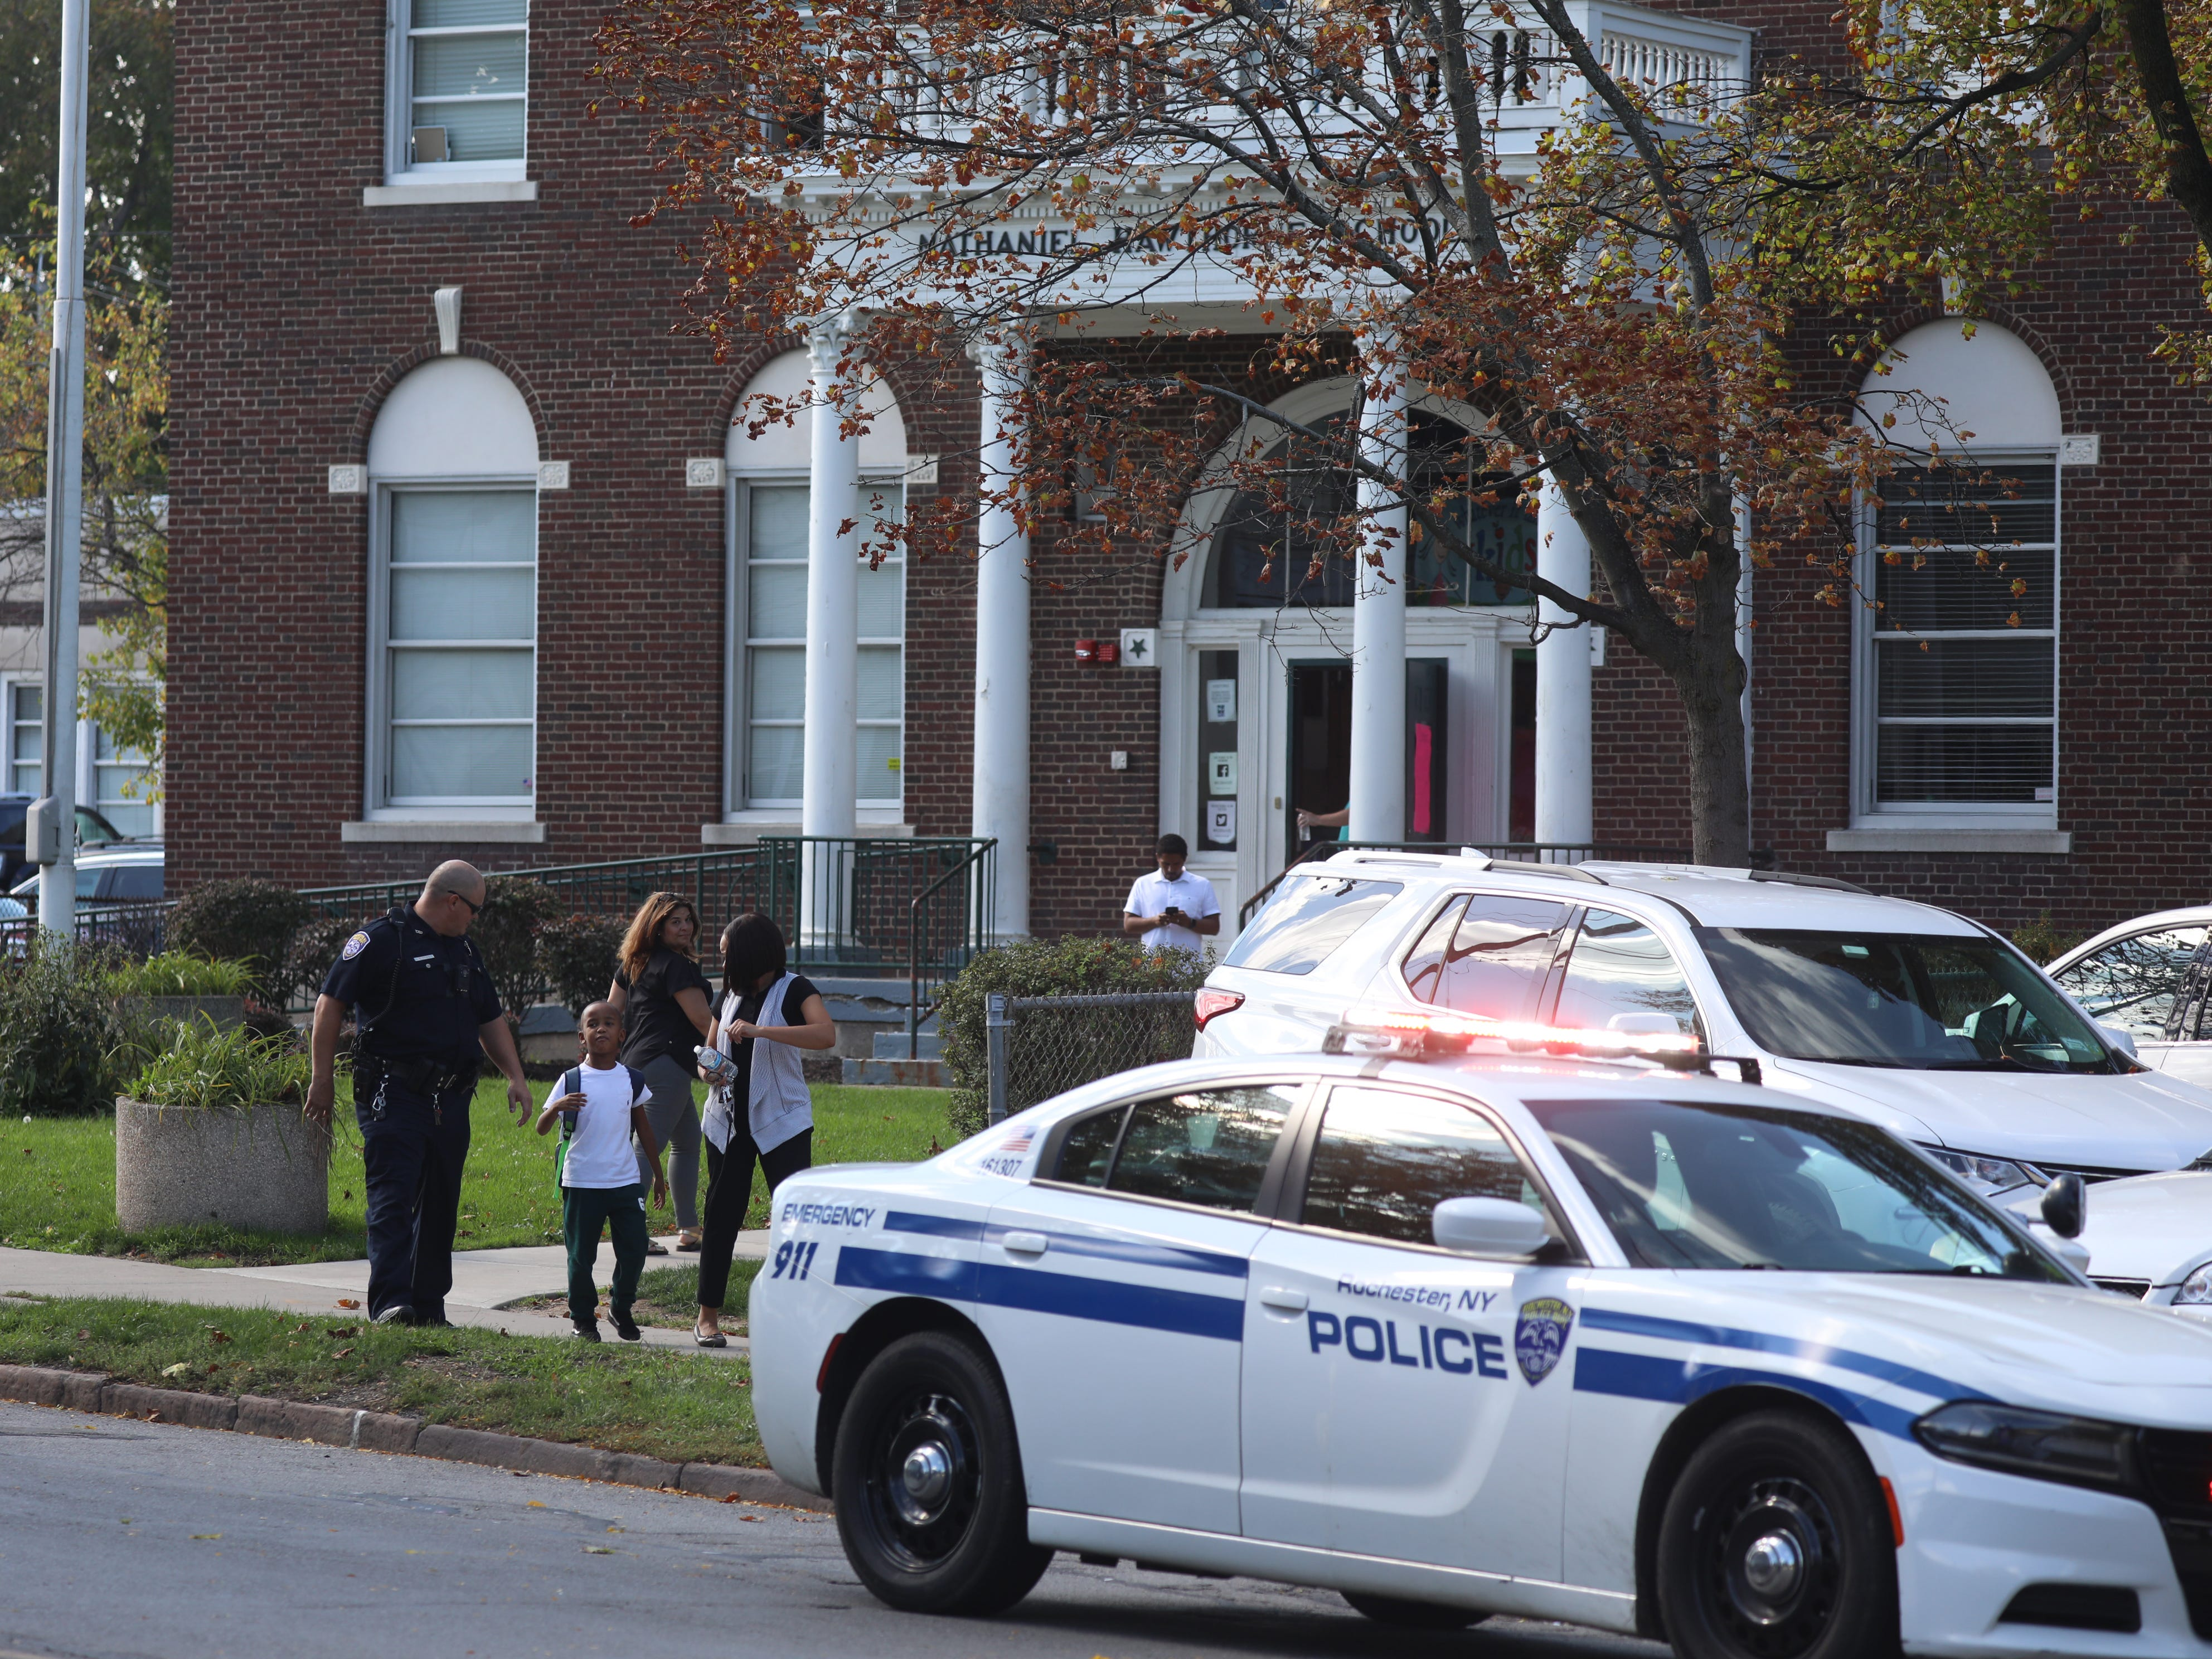 Children were released from School 25 early to parents after a shooting in the area between police and a suspect.